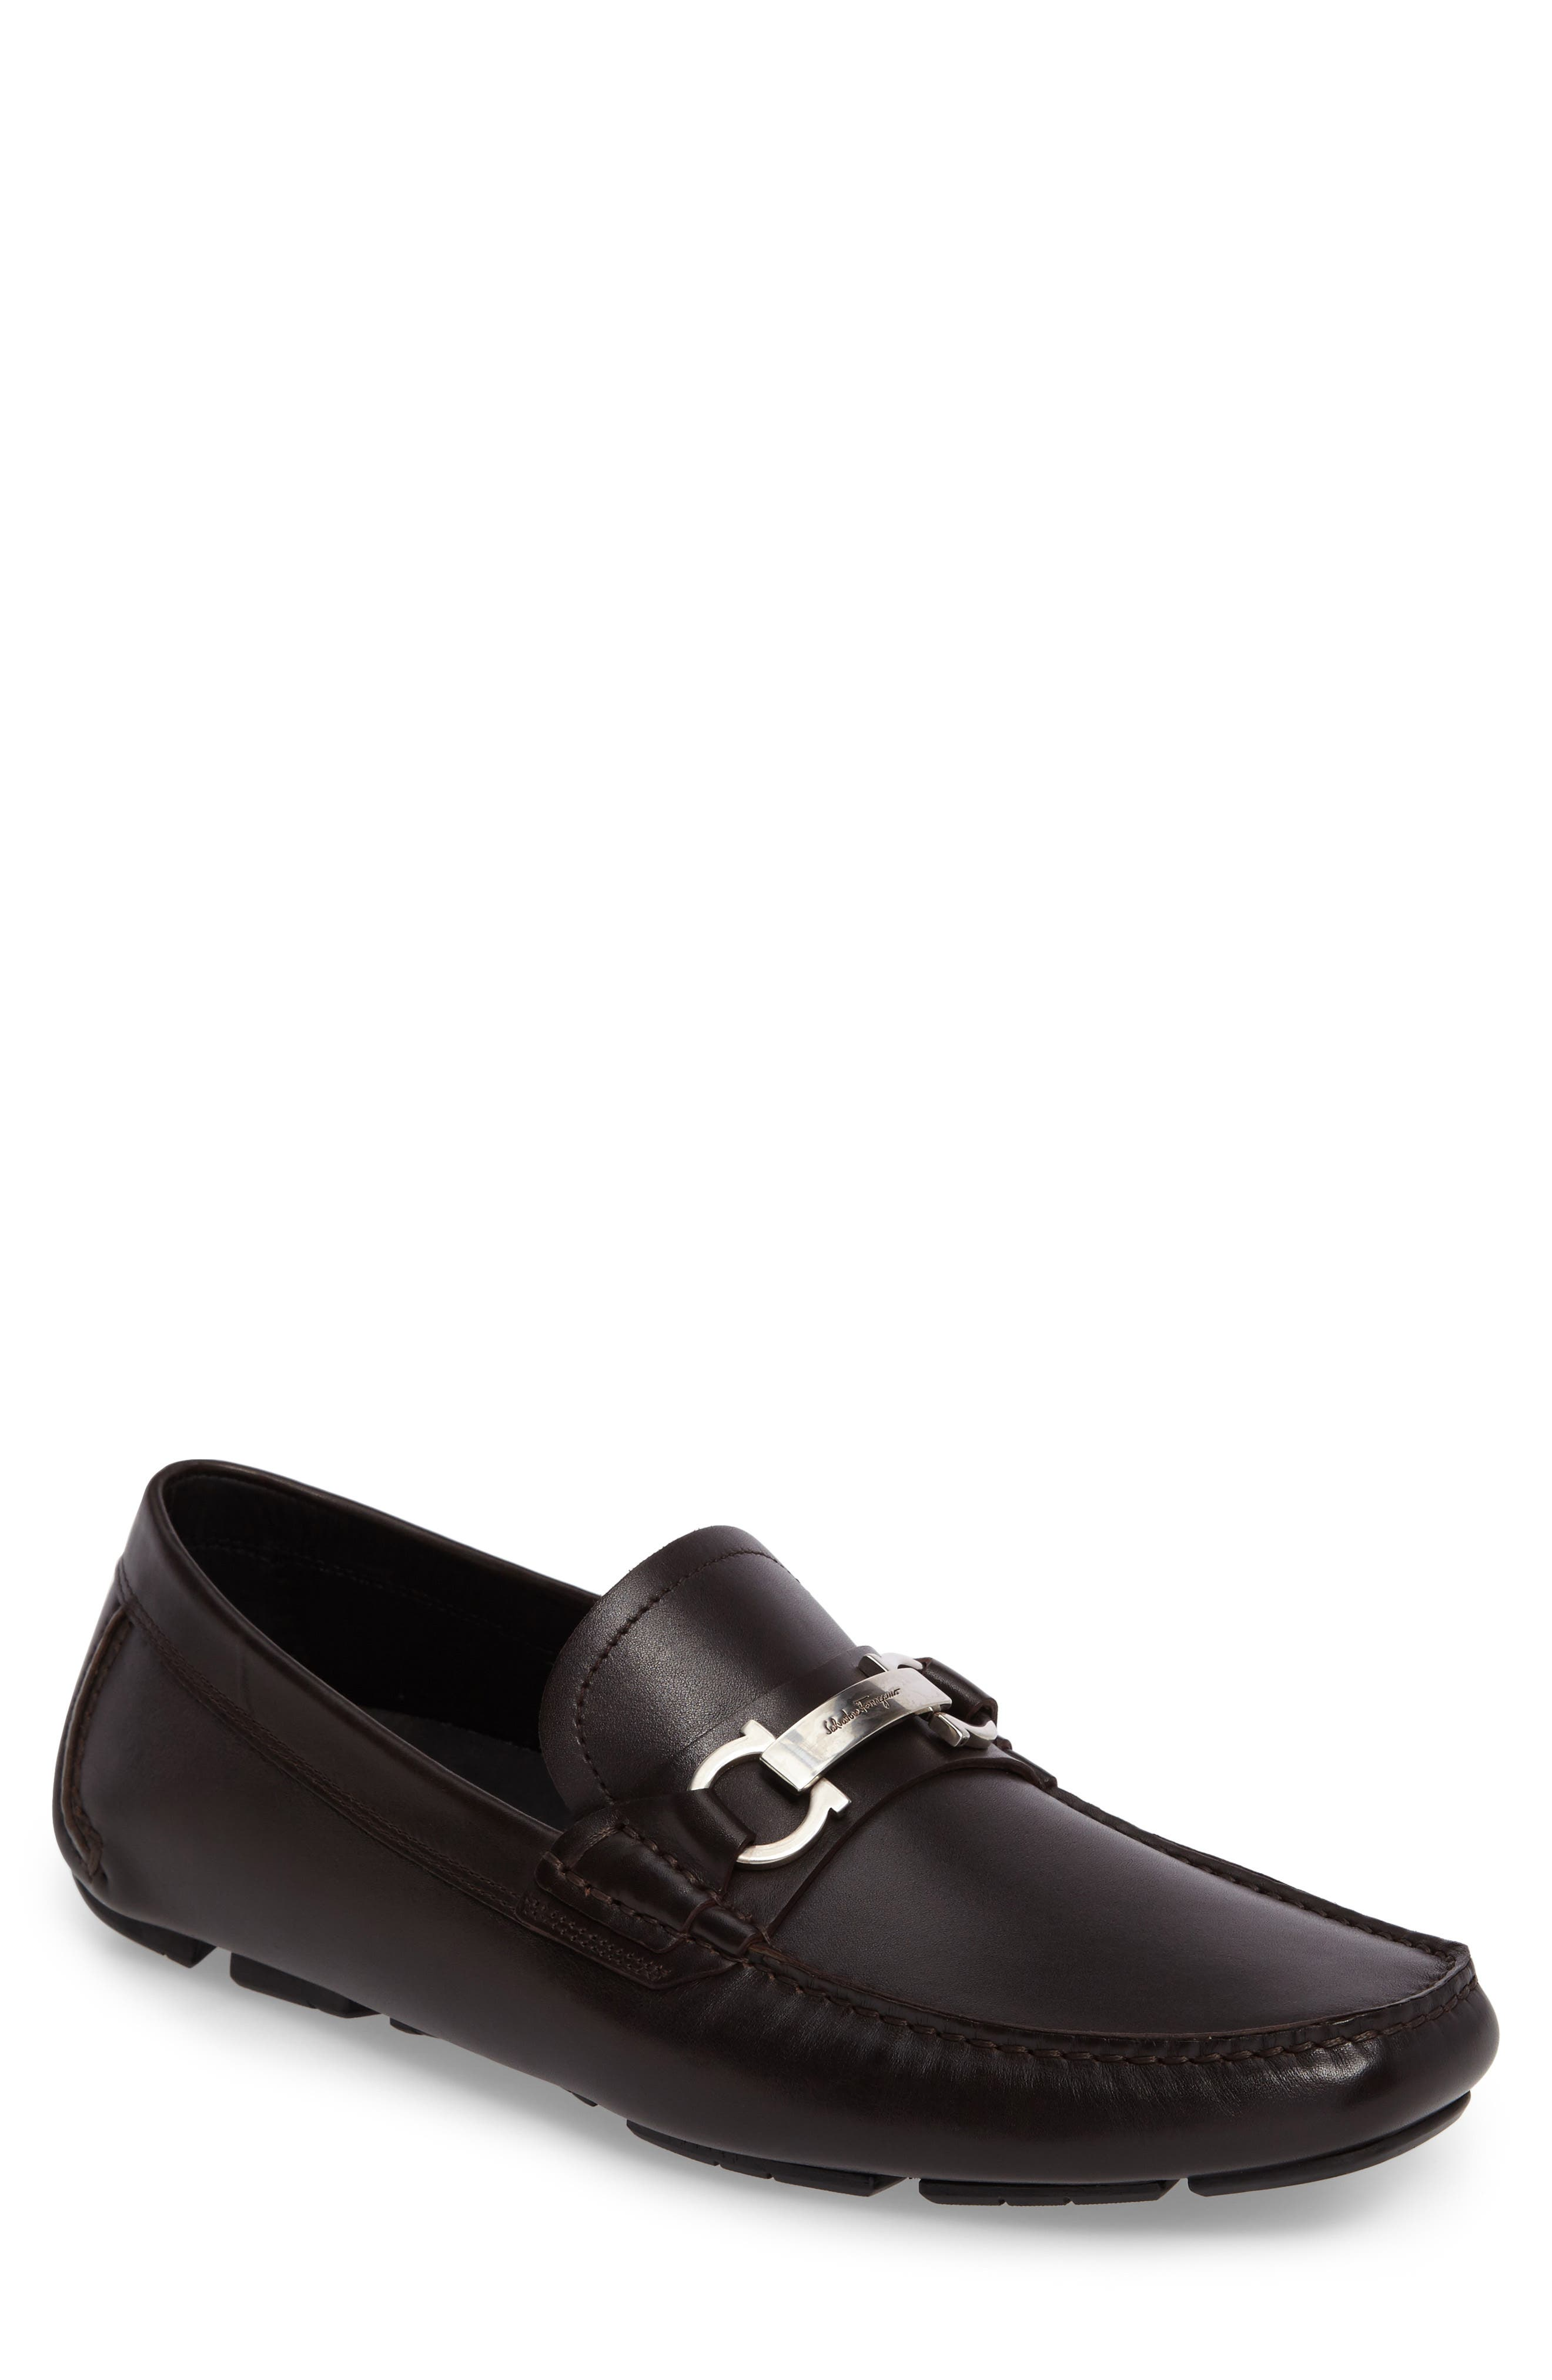 Driving Shoe,                         Main,                         color, Hickory Leather